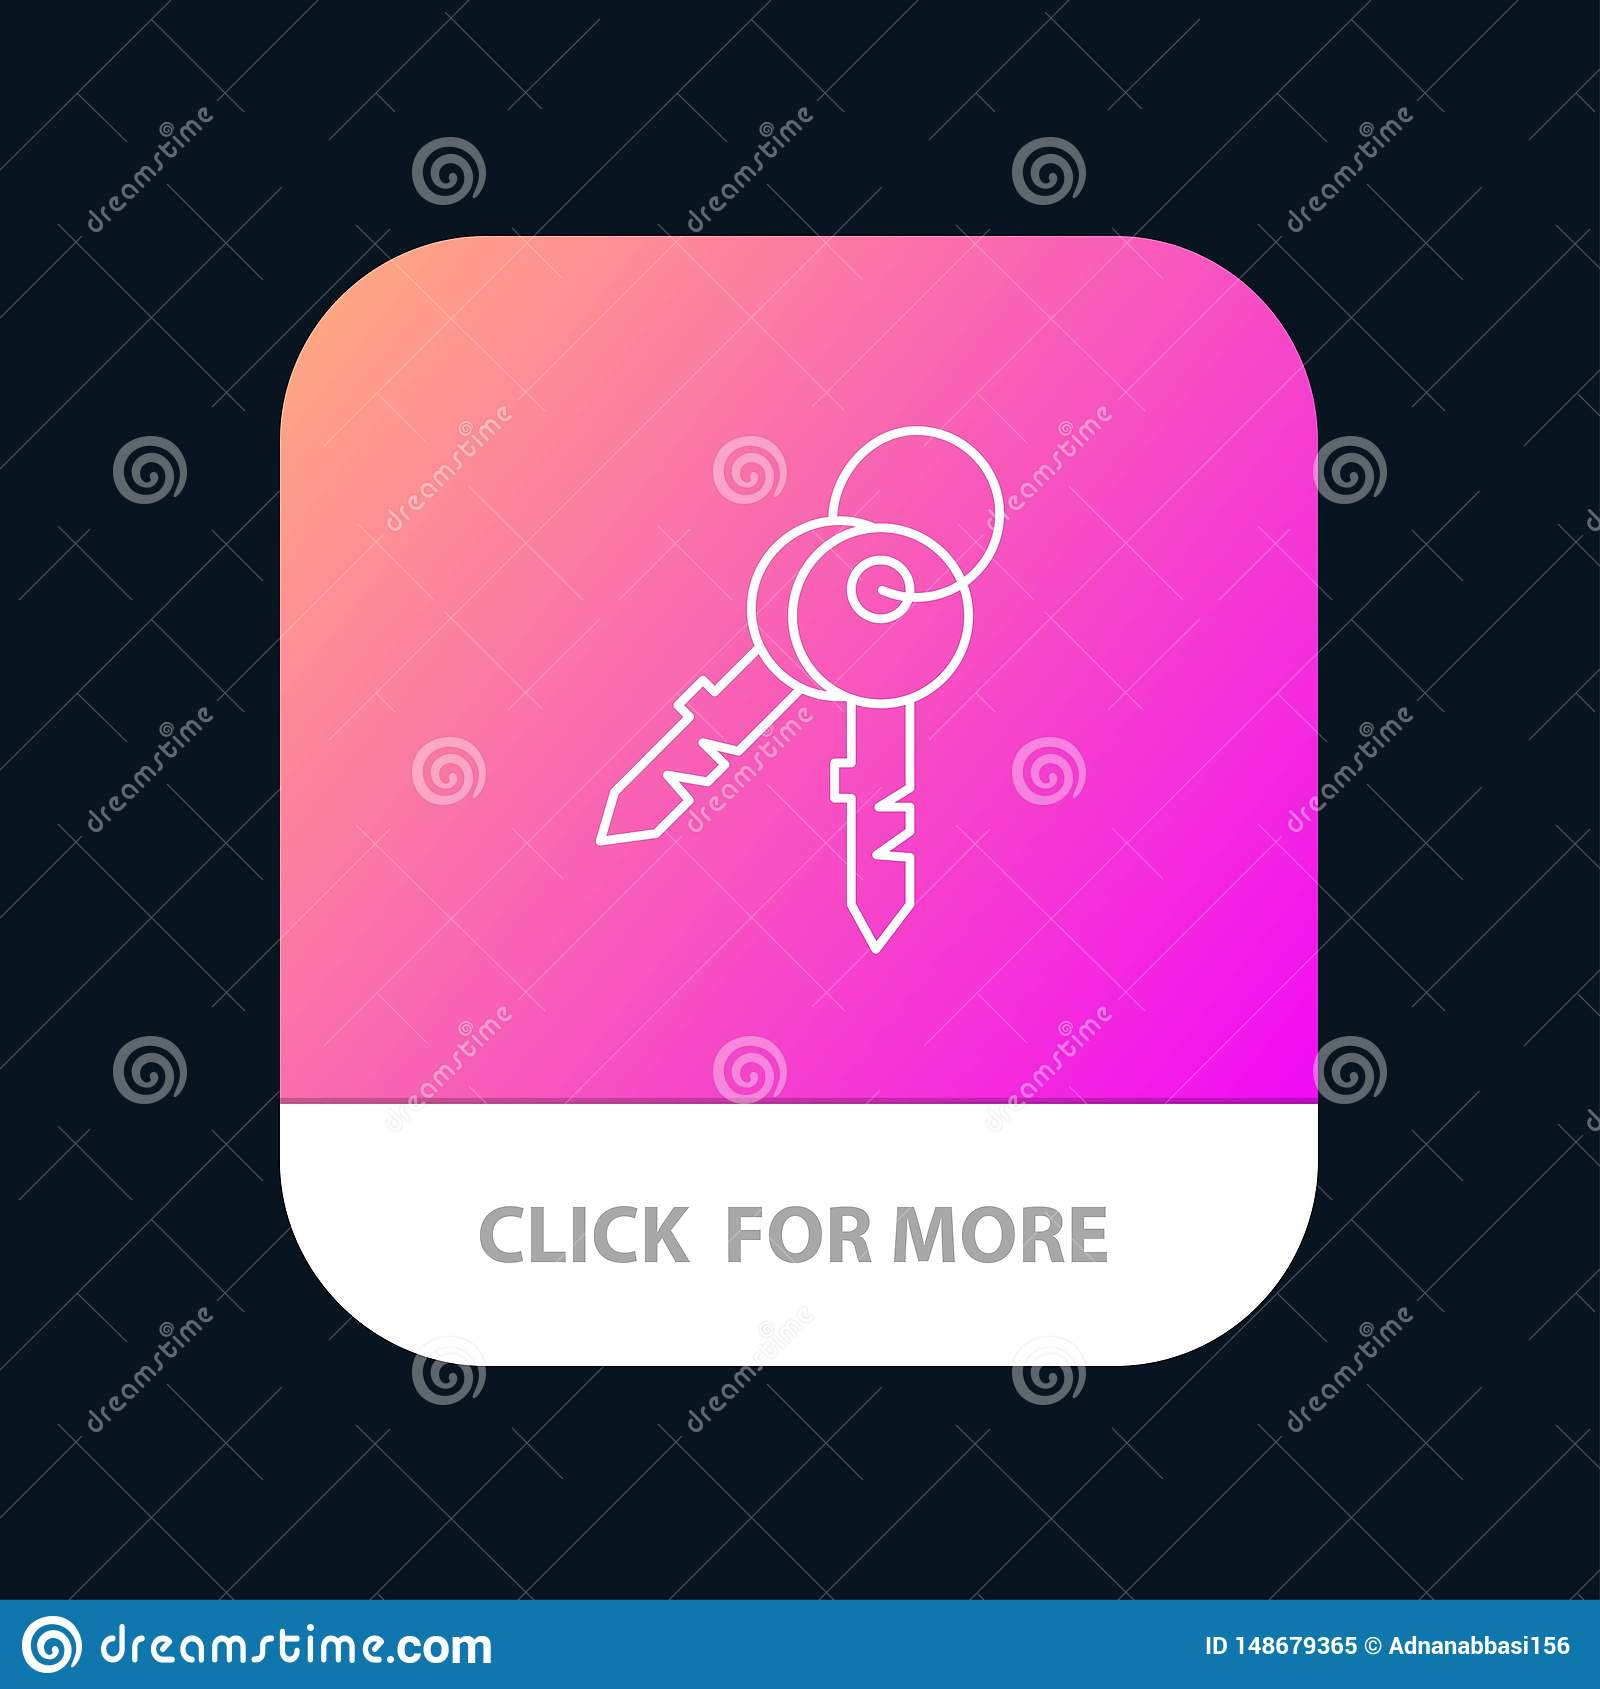 Keys, Door, House, Home Mobile App Button  Android And IOS Line